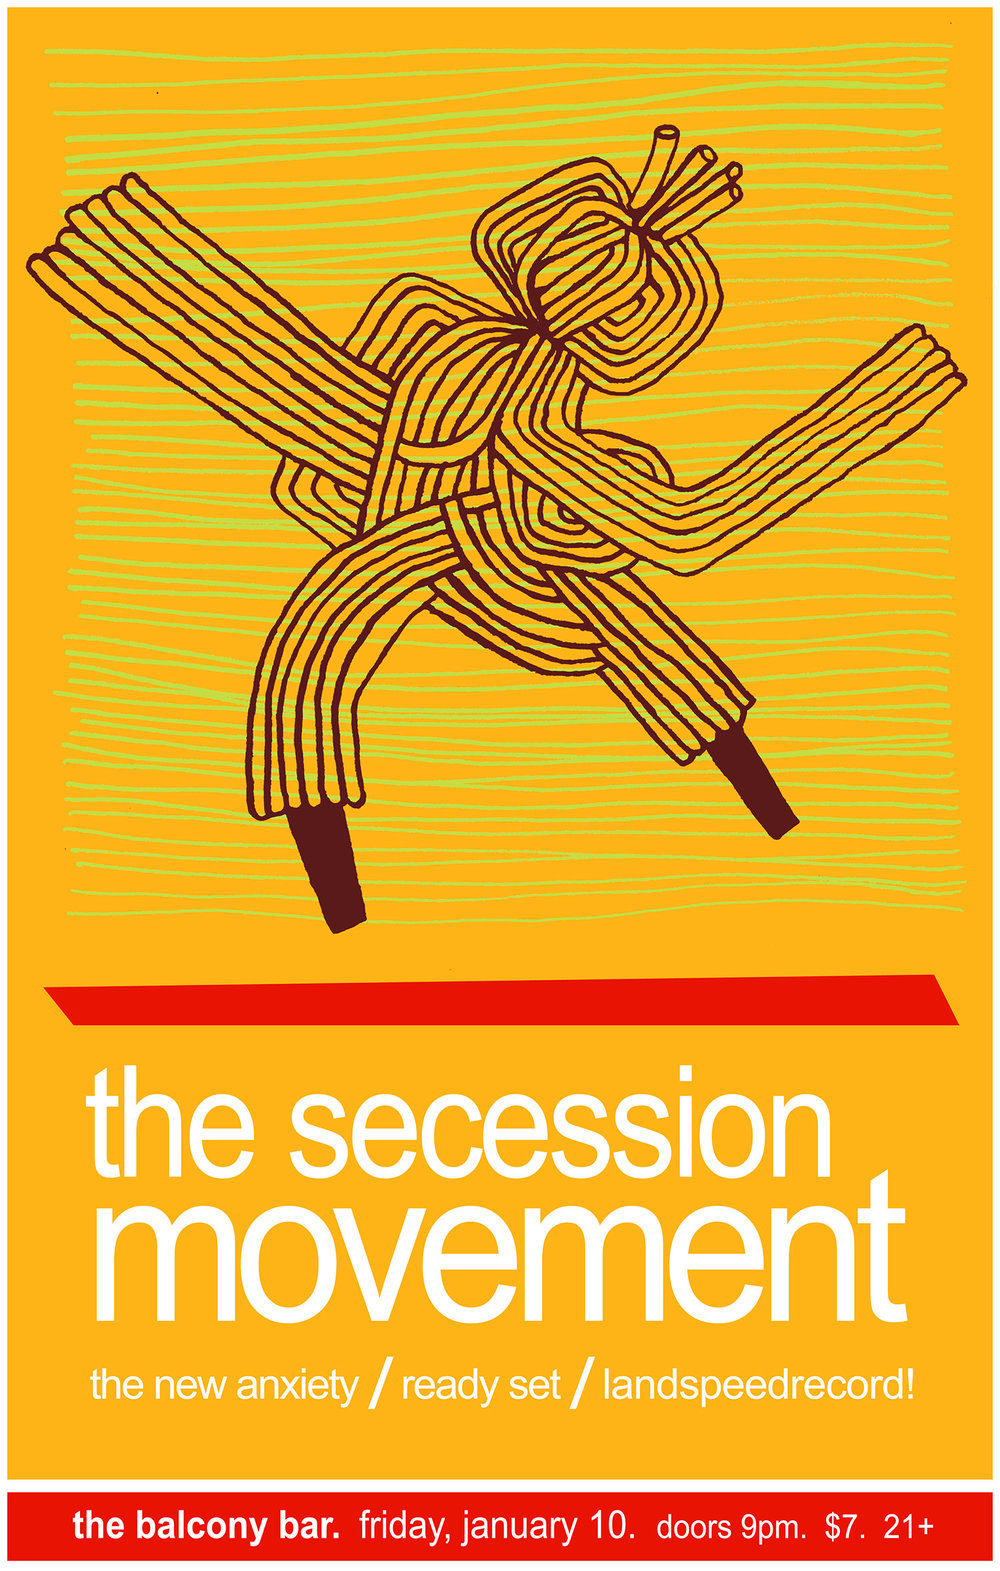 SecessionMovement1-2003-1500.jpg